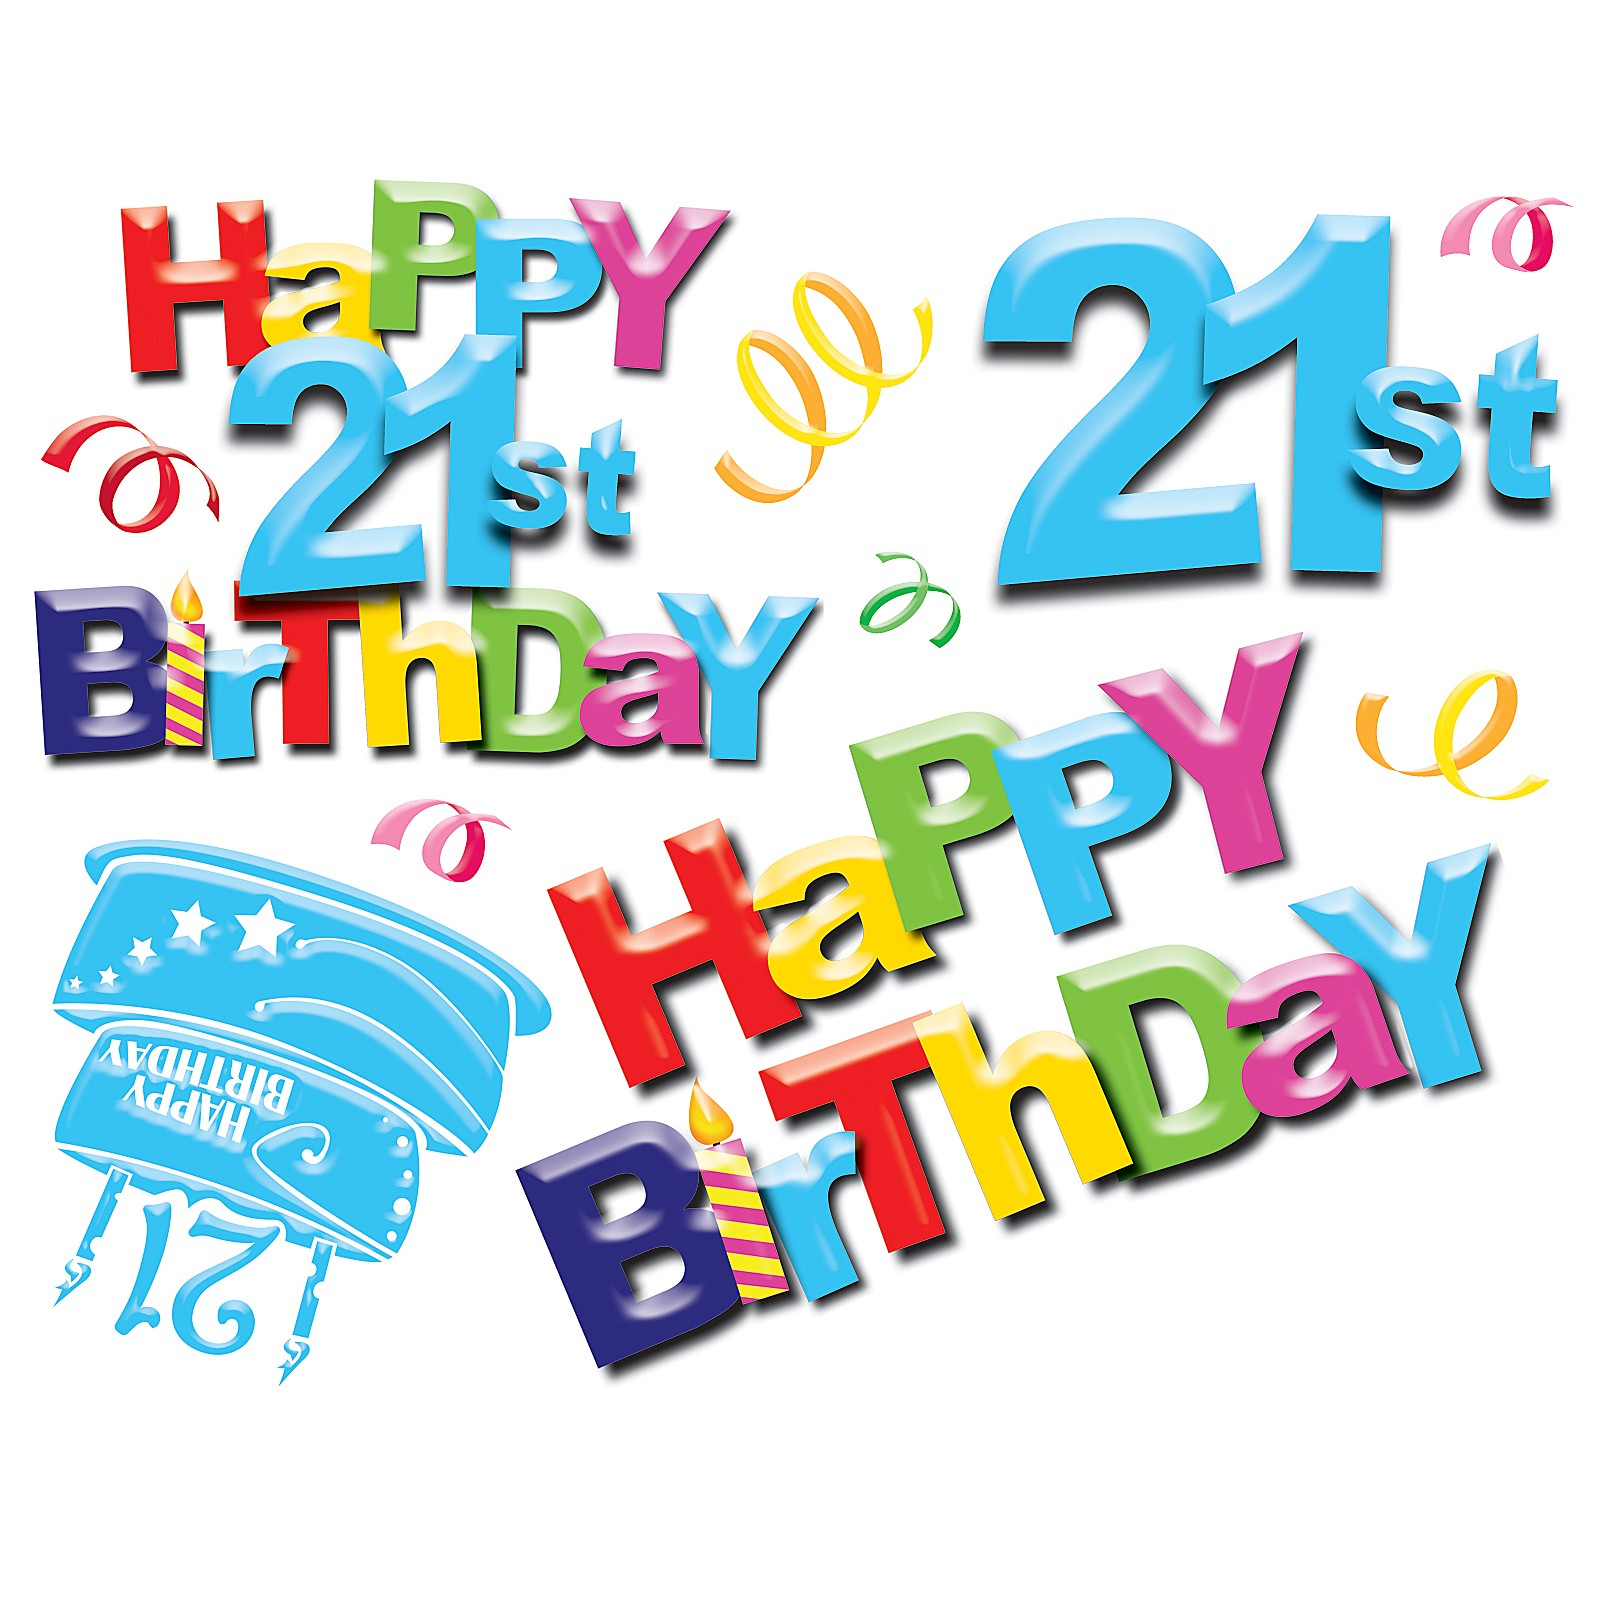 St graphics download clip. Free clipart for happy birthday for nephew